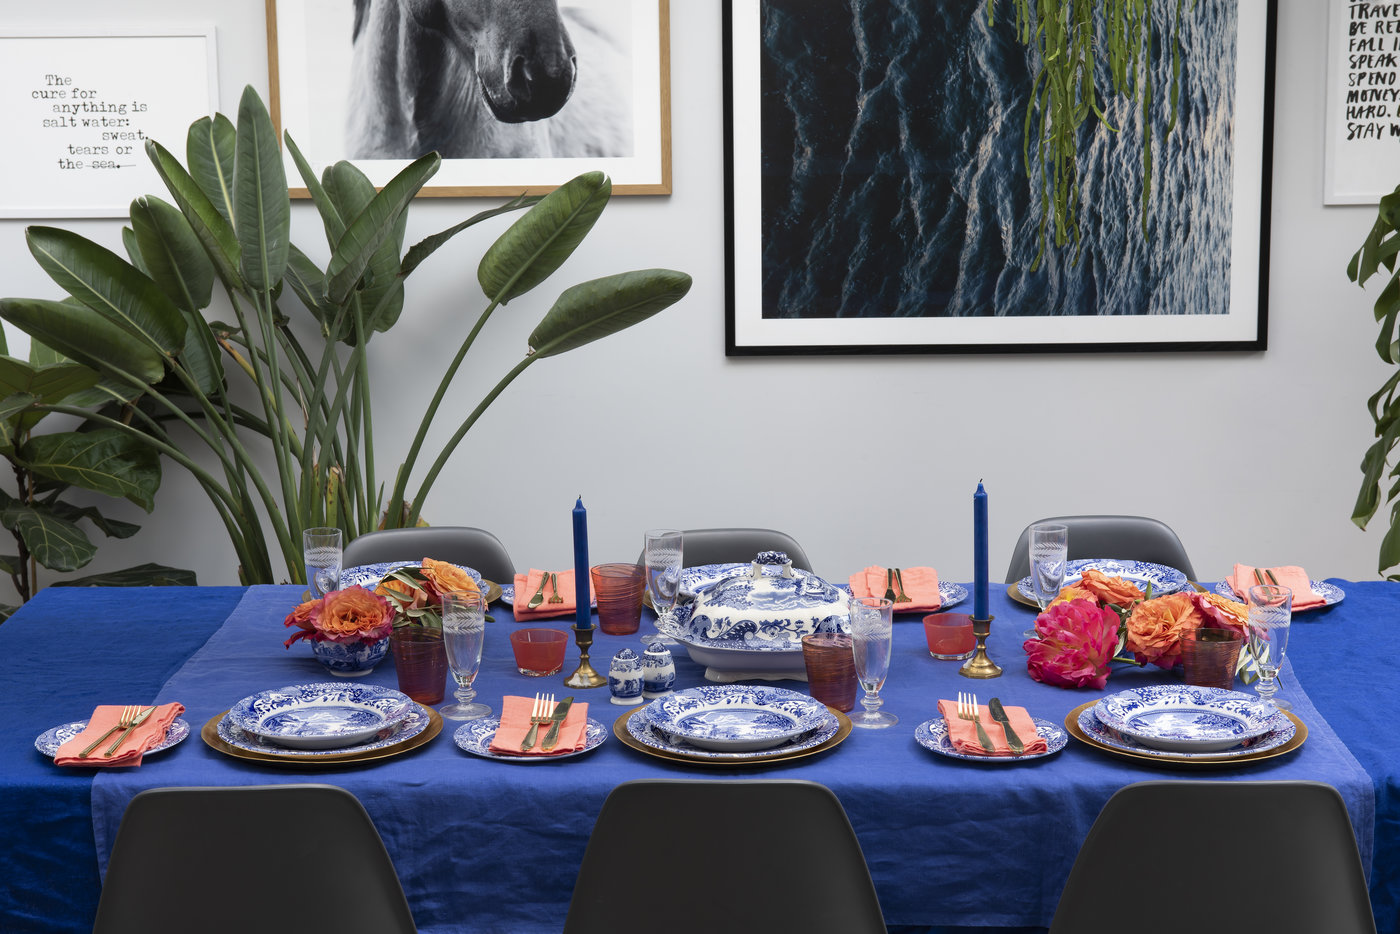 Formal, Relaxed, Everyday: Your Guide to Setting the Dinner Table